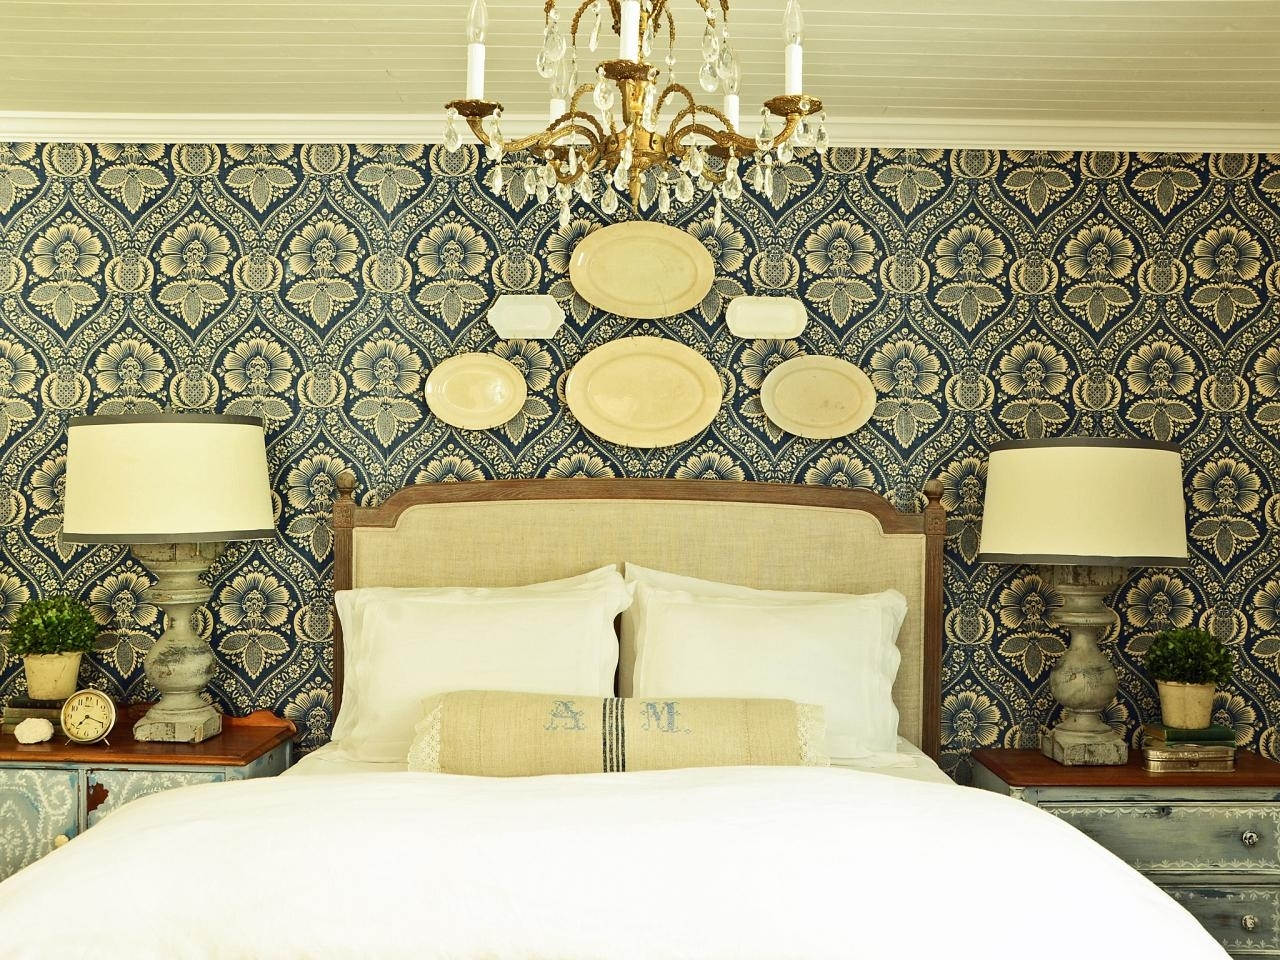 How To Install A Fabric Feature Wall | Hgtv Within Recent Bedroom Fabric Wall Art (View 2 of 15)